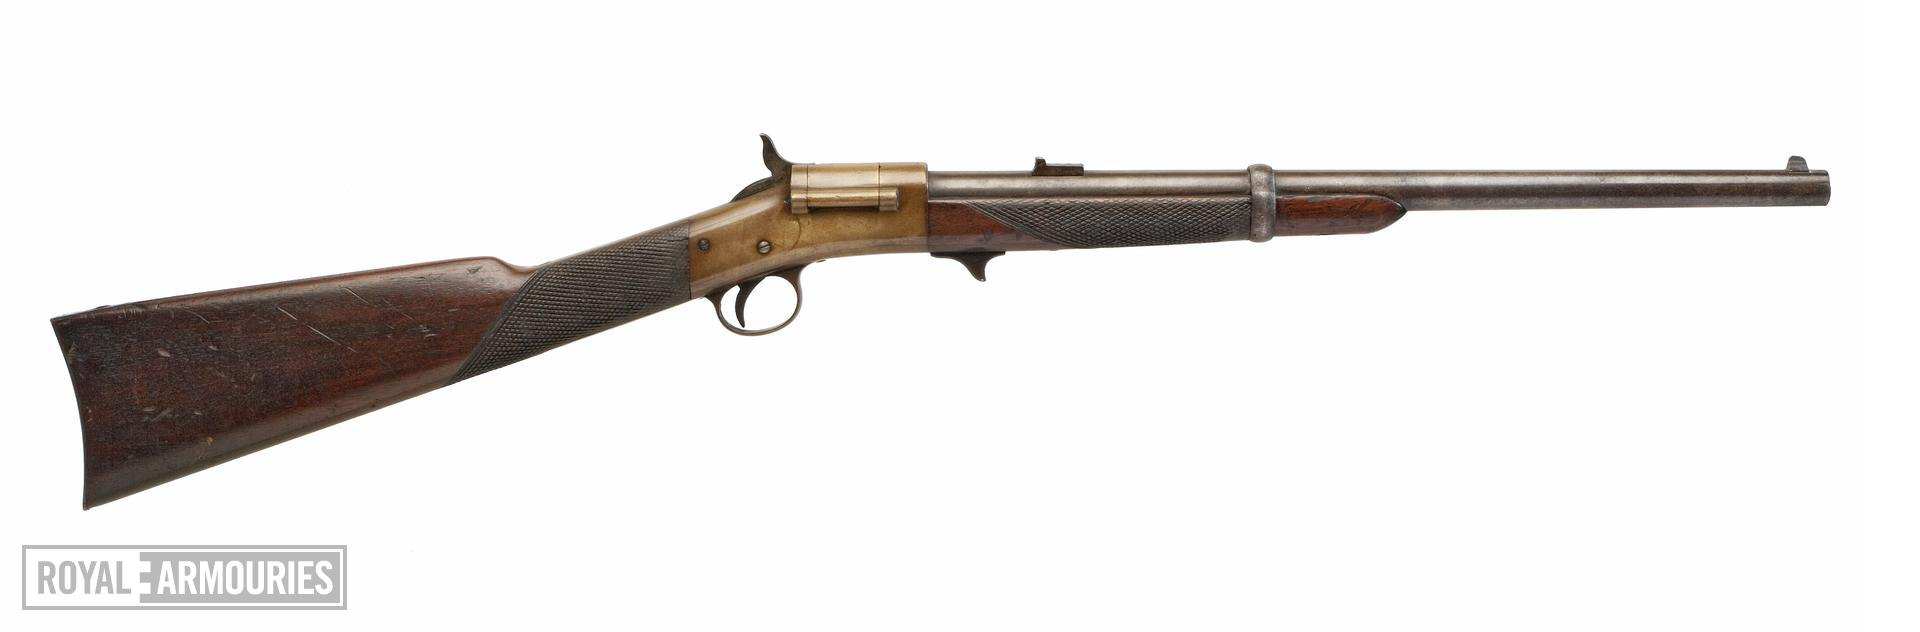 Rimfire breech-loading military carbine - Warner Carbine Also known as the Warner-Greene carbine